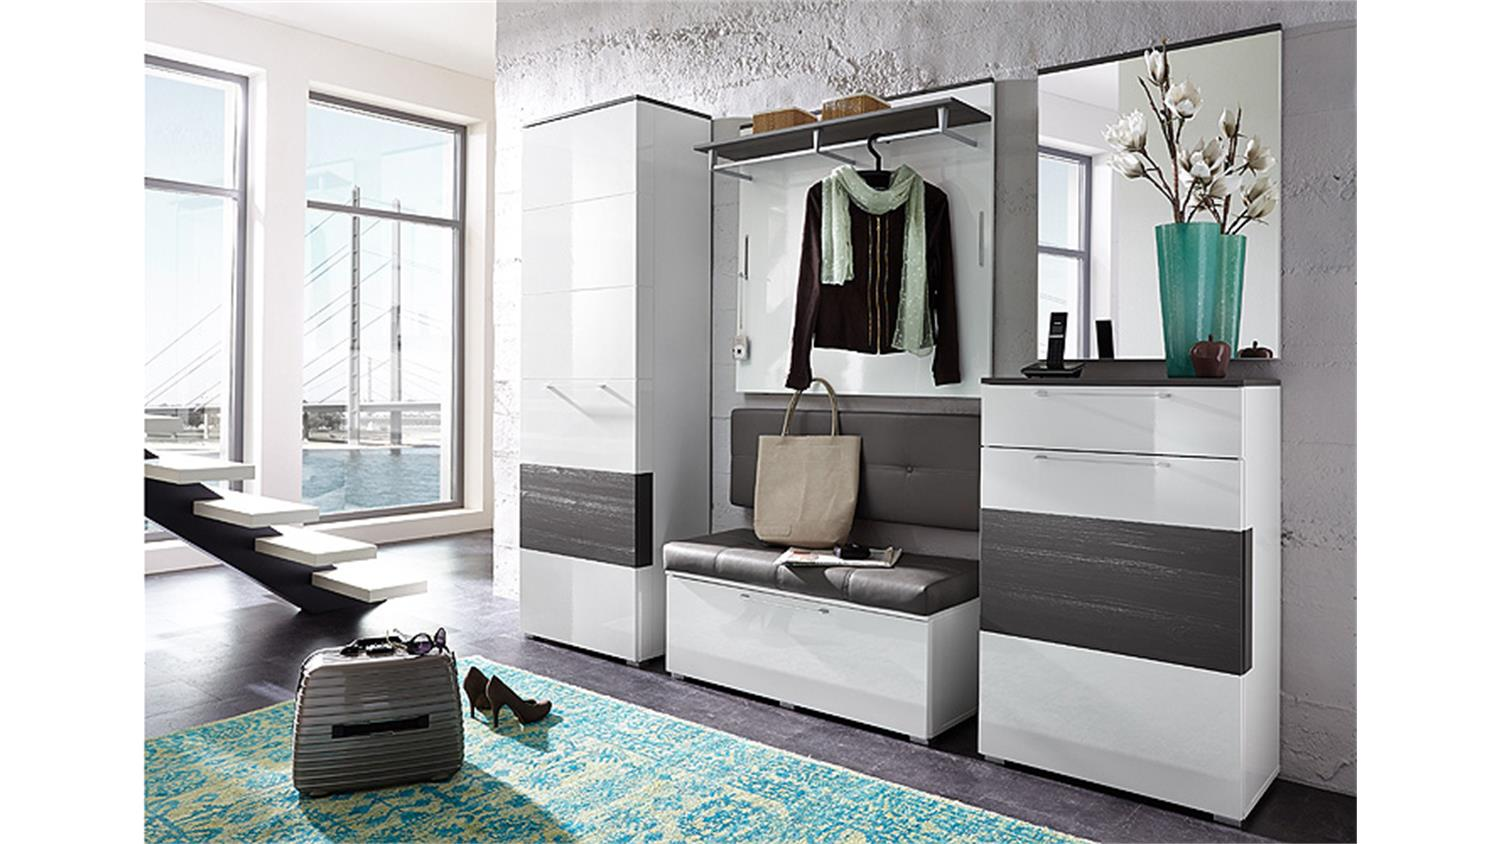 schuhschrank reno schrank in wei hochglanz und grau. Black Bedroom Furniture Sets. Home Design Ideas